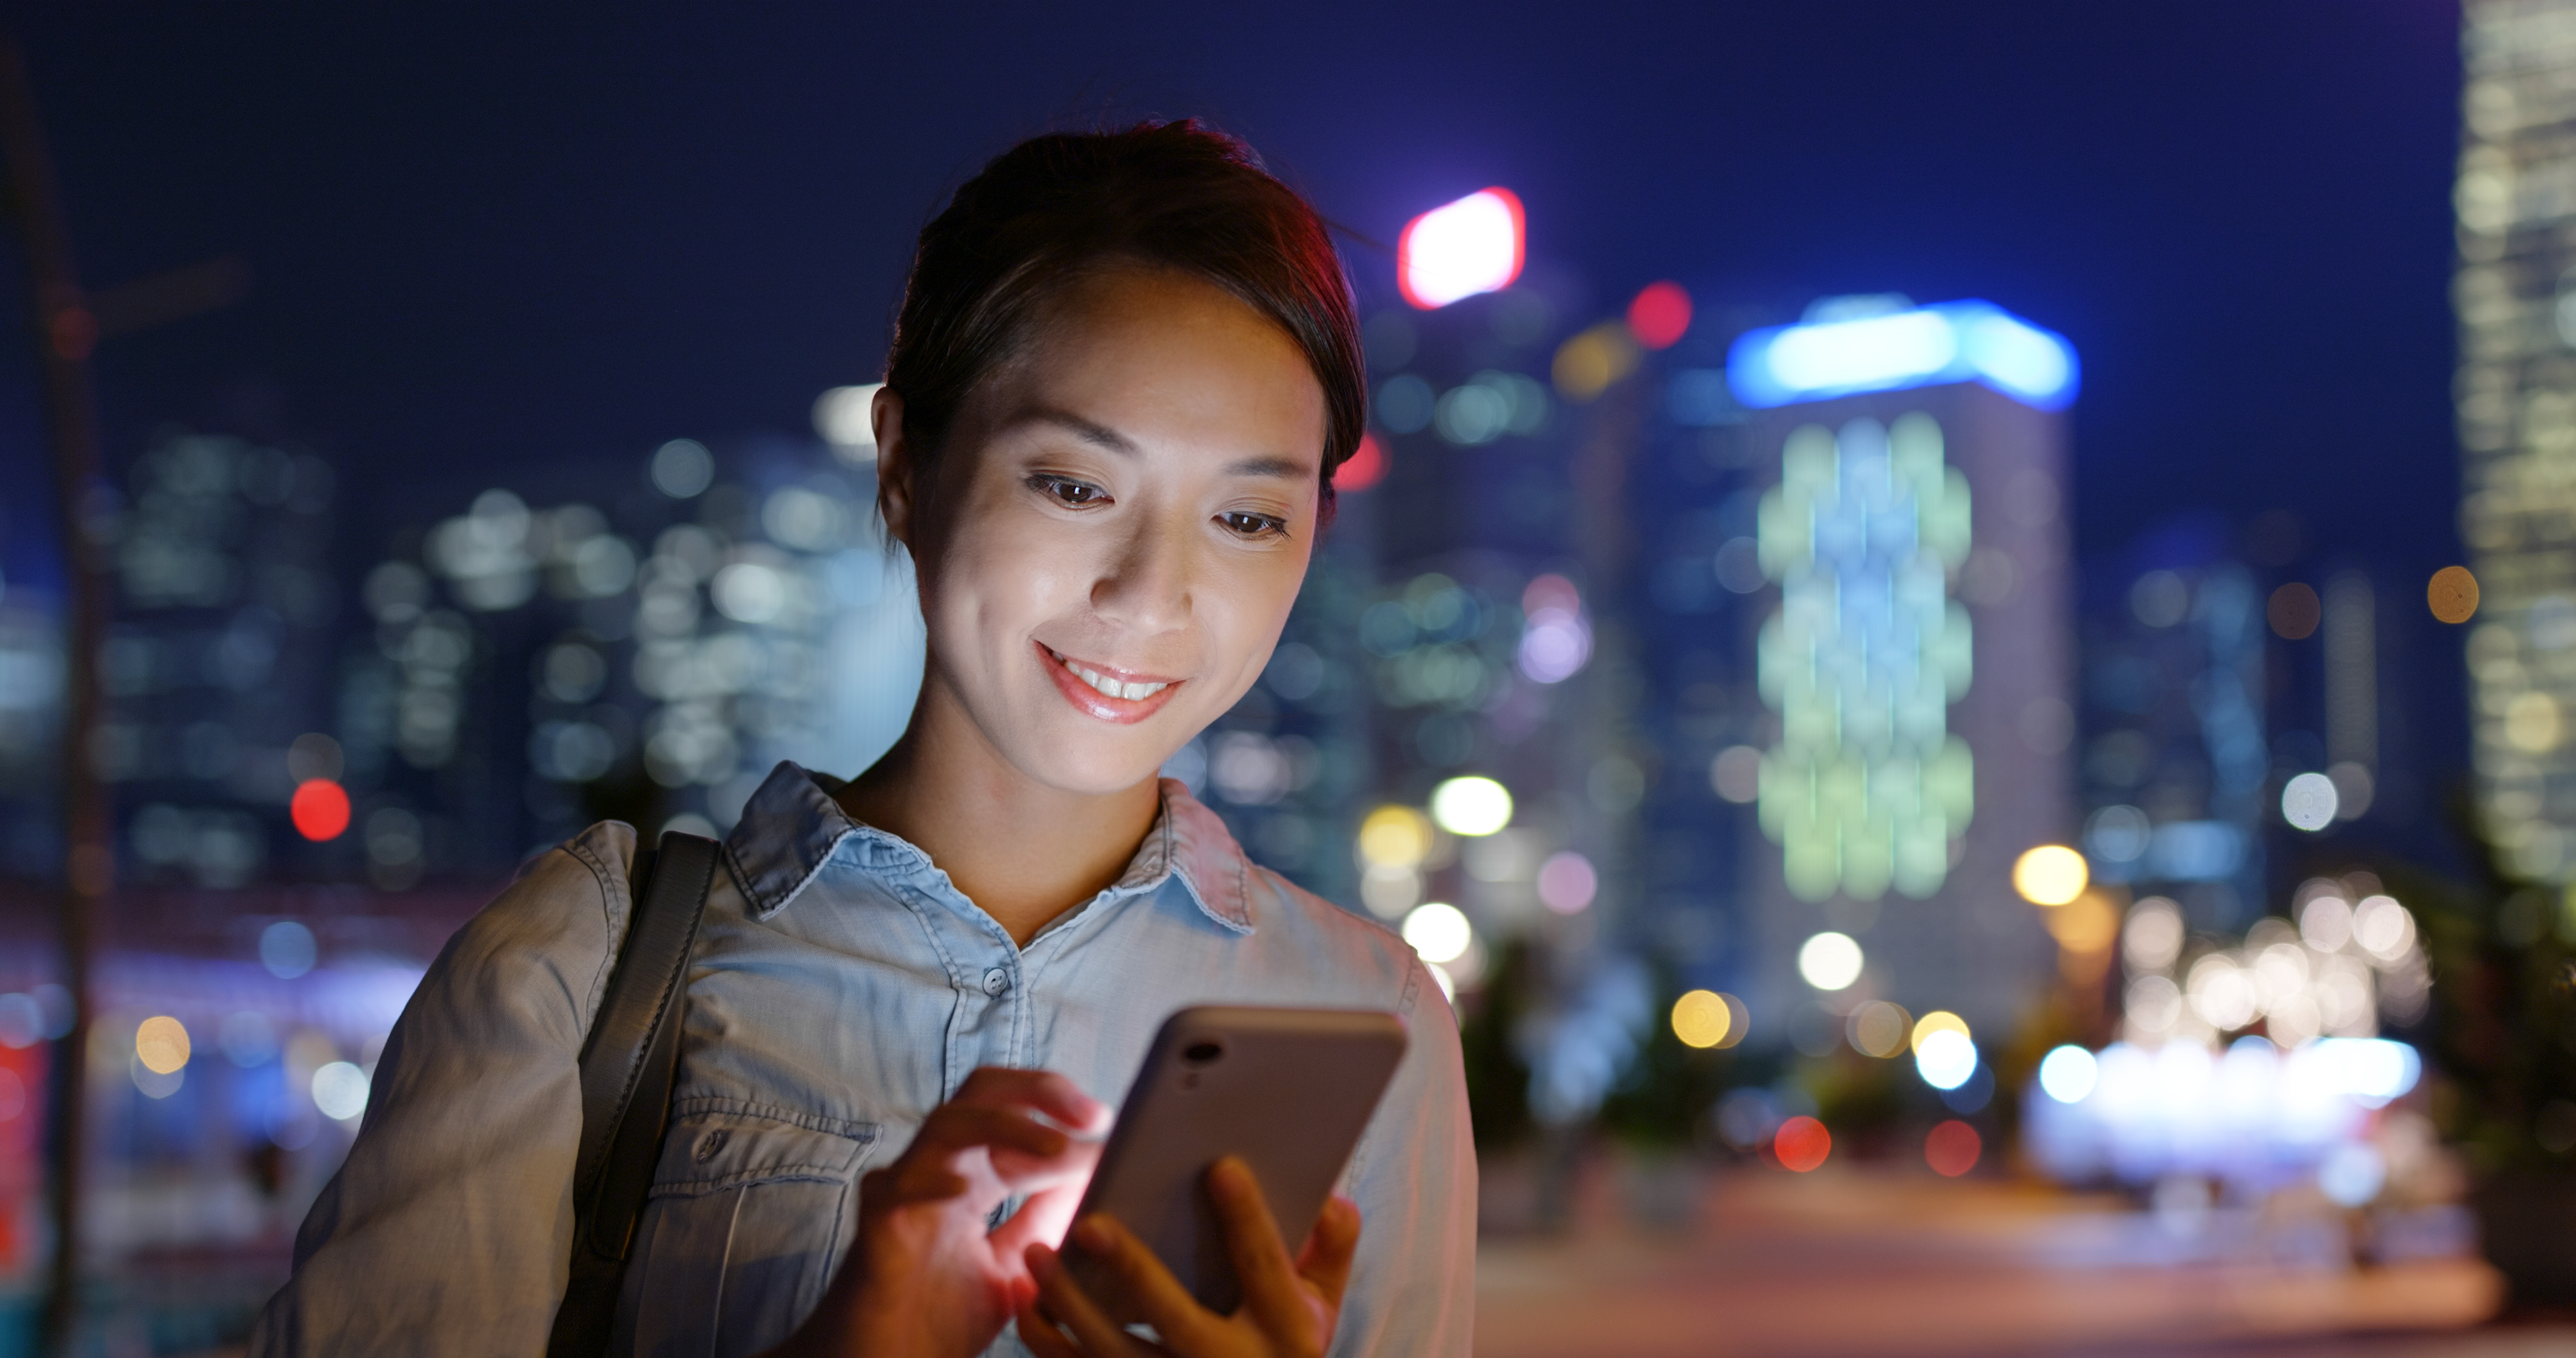 Towards smarter cities with human-centric and data-based innovations